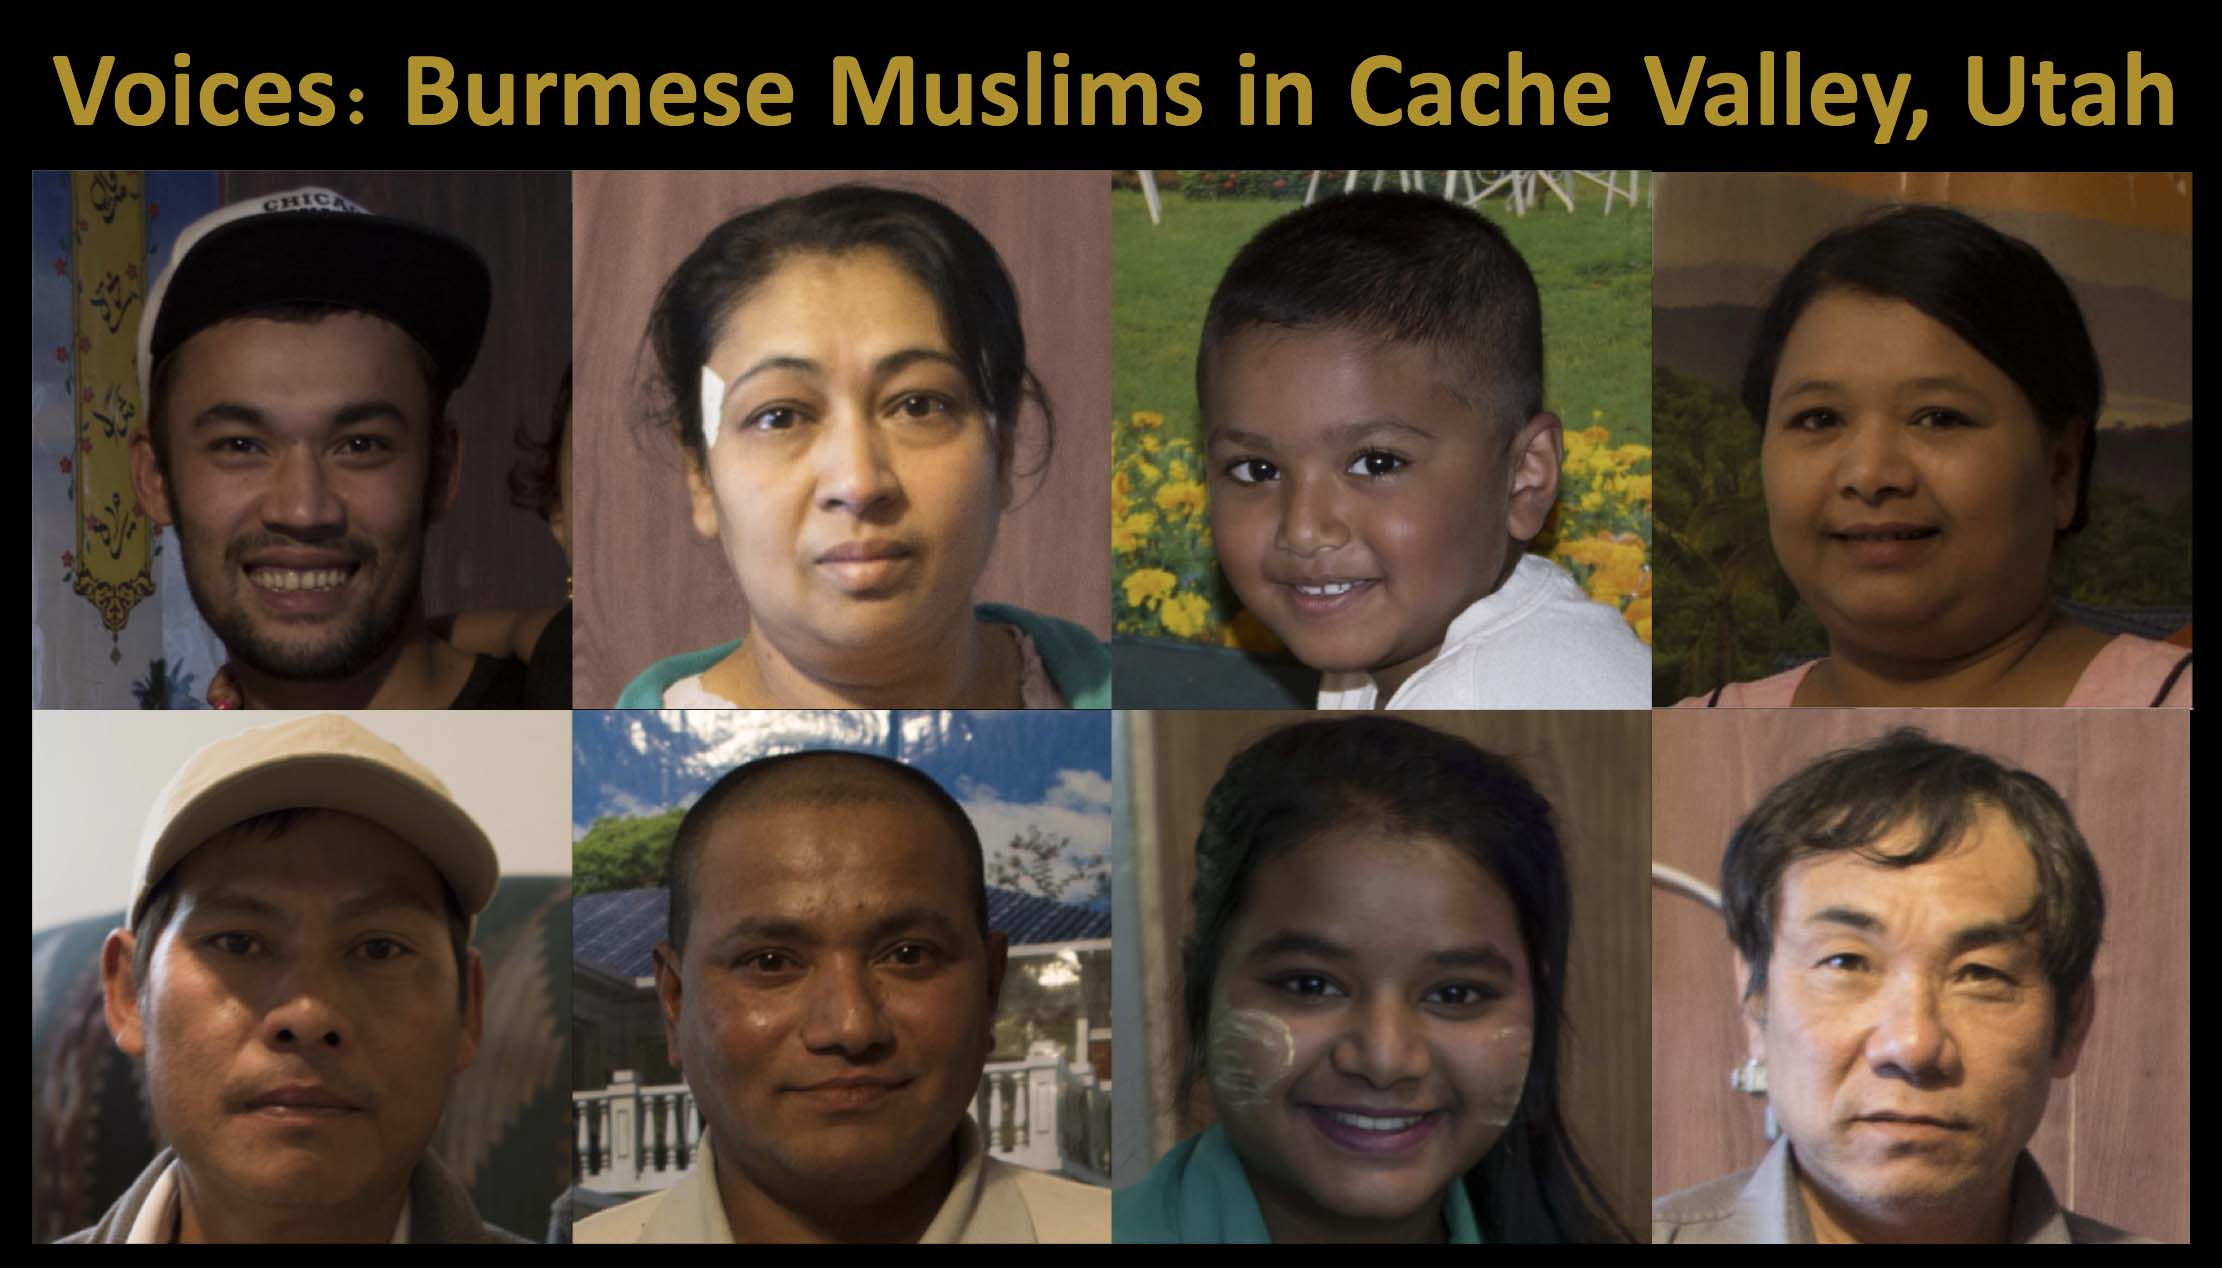 Voices-BurmeseMuslims Graphic